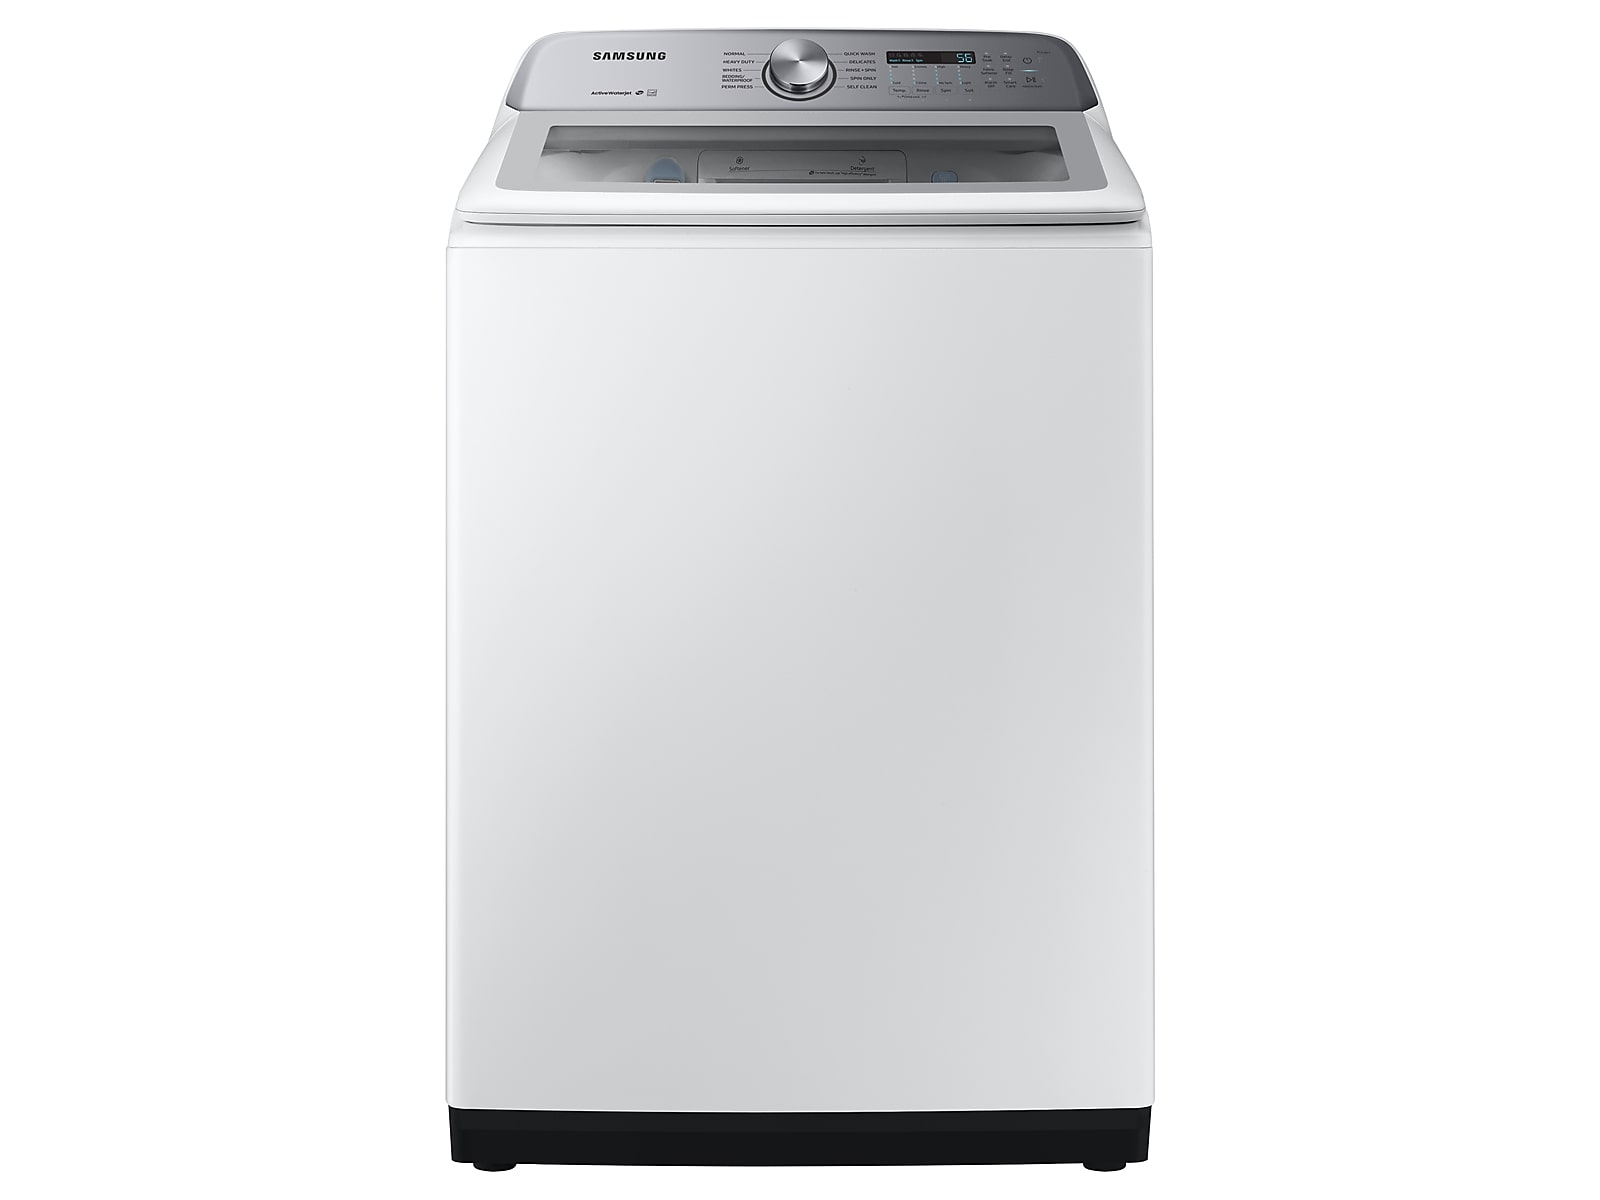 Samsung 5.0 cu. ft. Top Load Washer with Active WaterJet in White(WA50R5200AW/US)